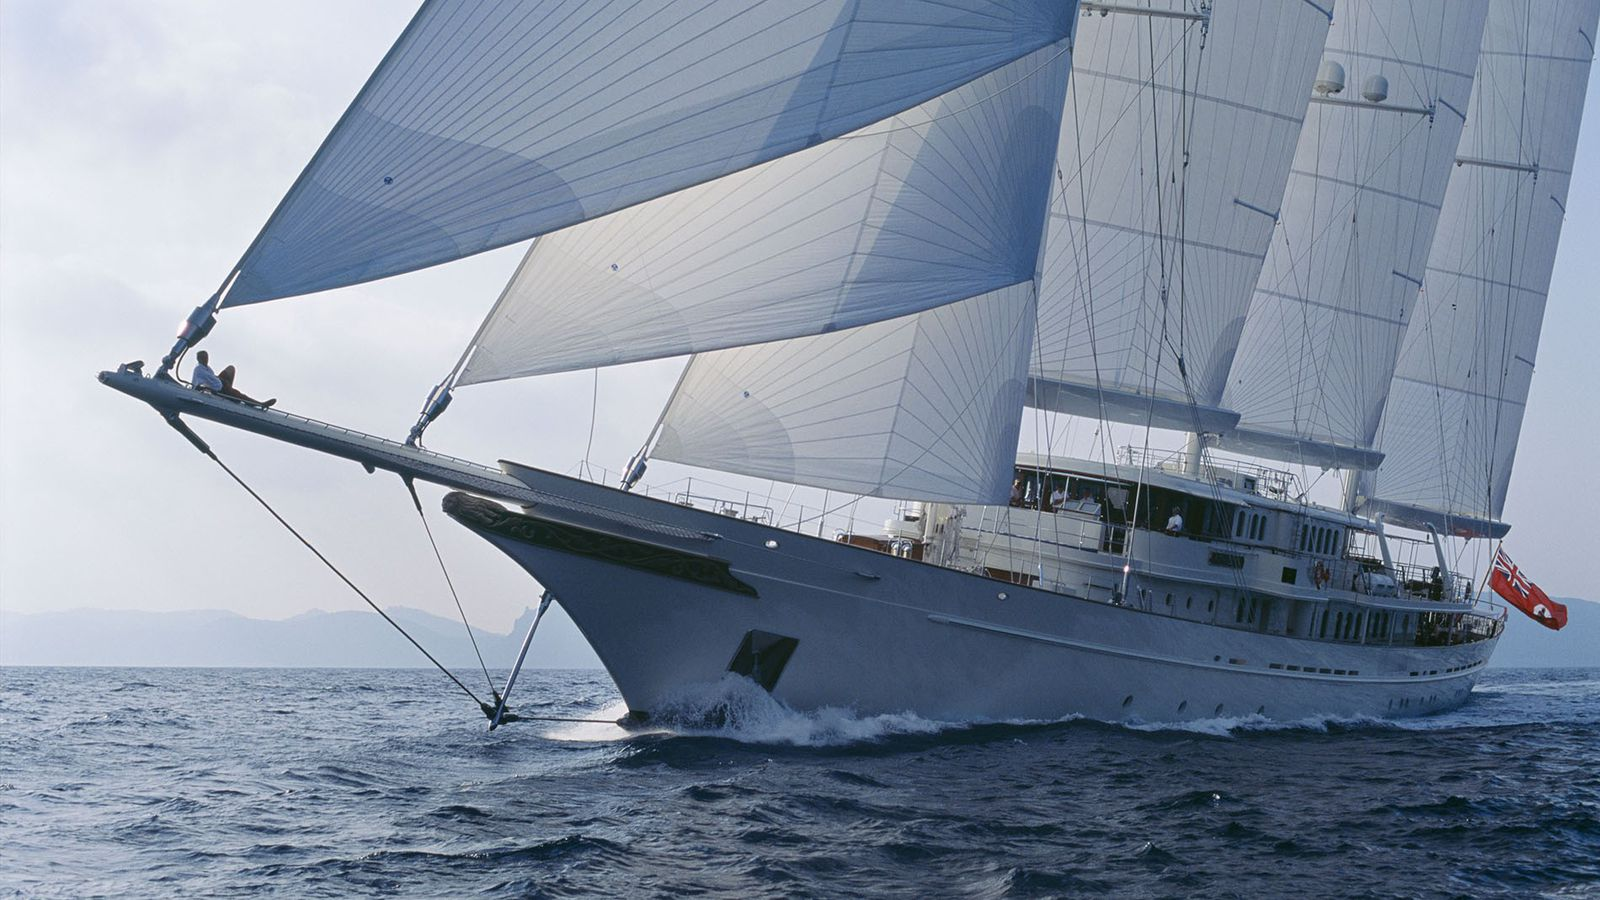 295 Foot Sailing Yacht Athena Is Docked In Miami